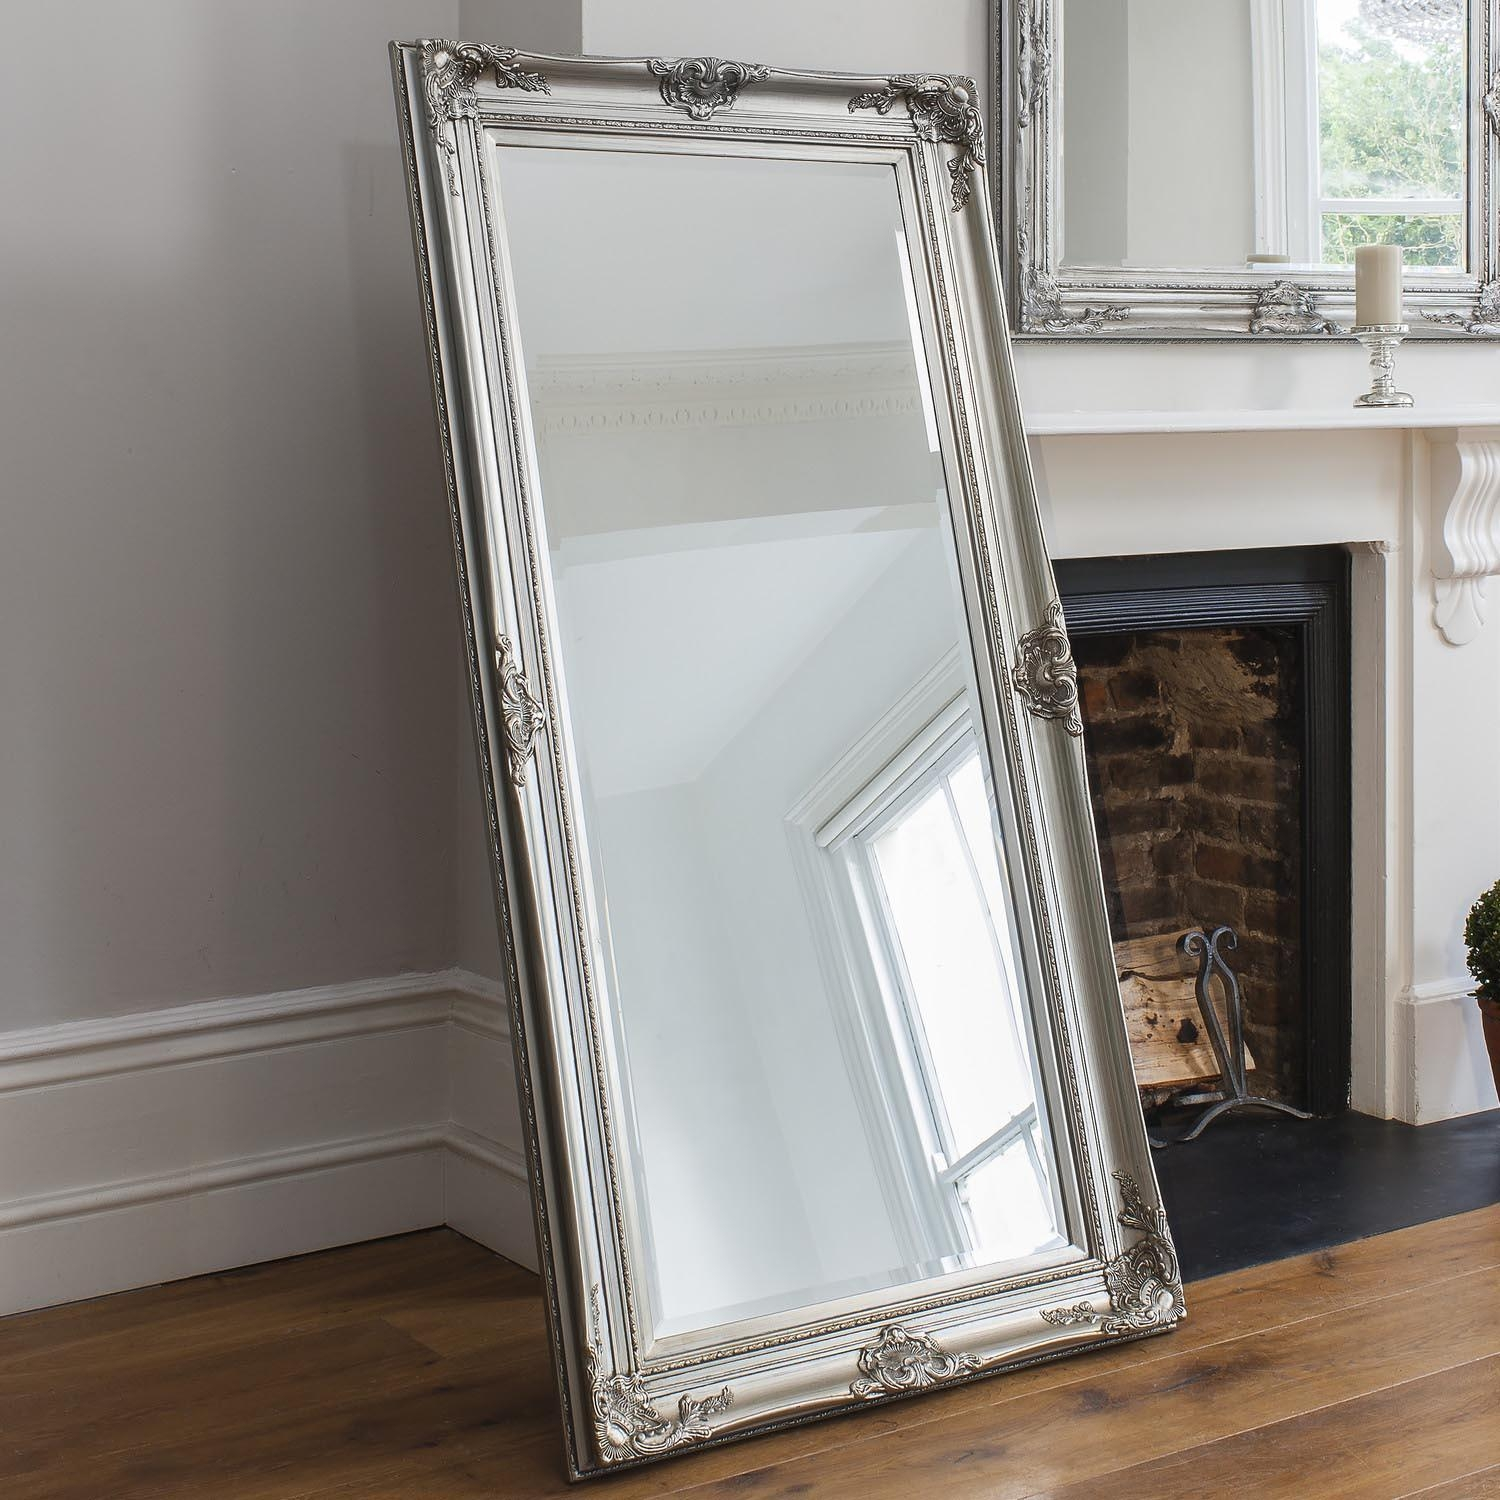 Extra Large Floor Standing Mirrors | Floor Decoration Pertaining To Extra Large Floor Standing Mirrors (View 8 of 20)